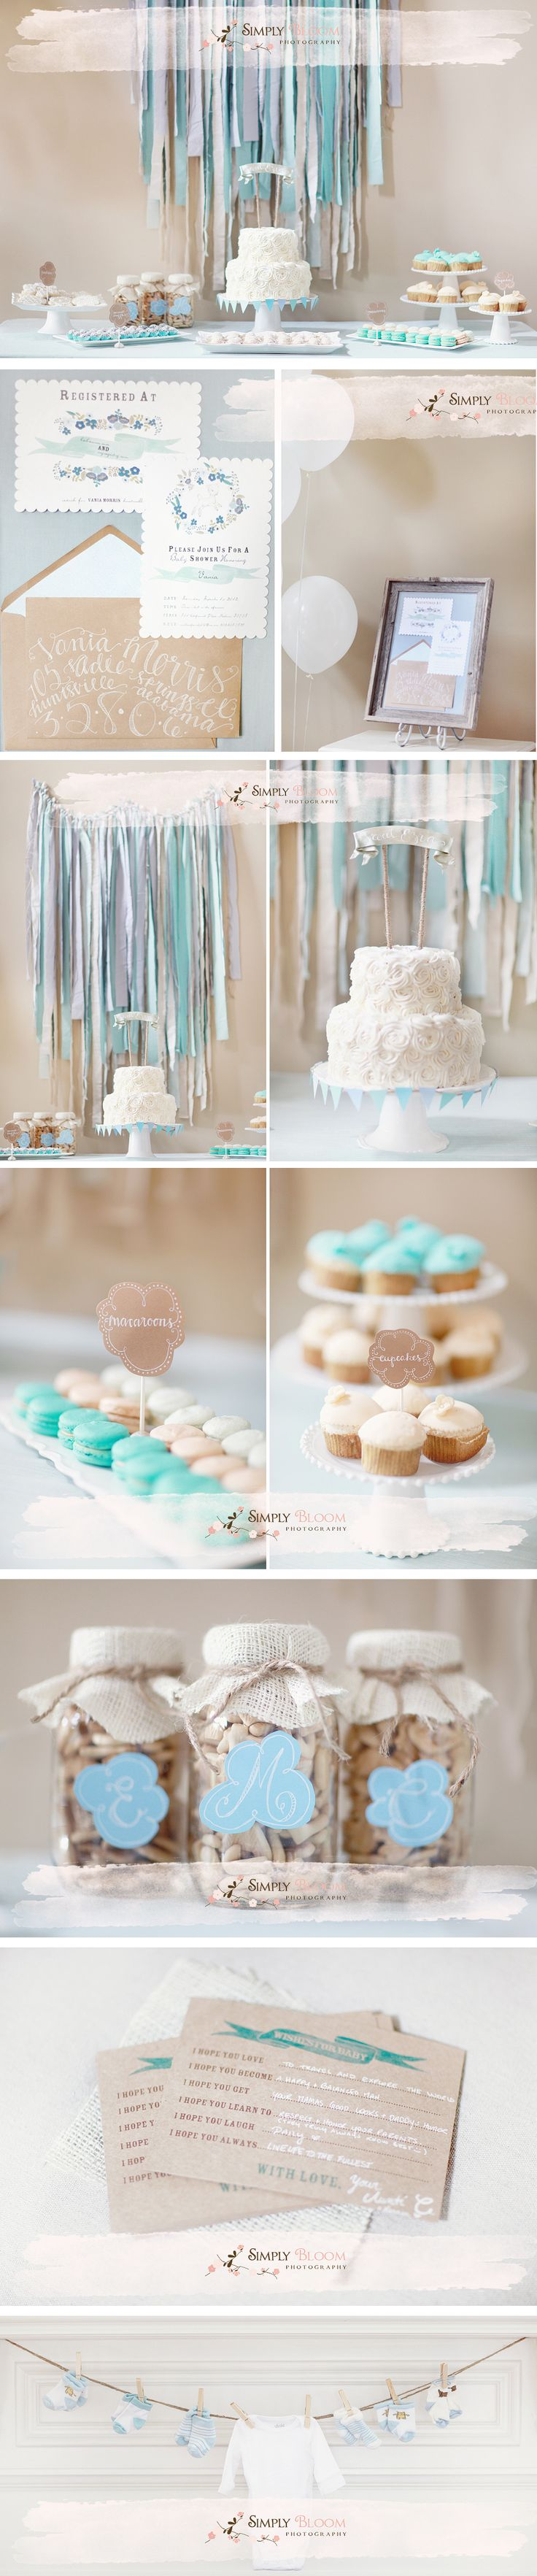 124 best Tiffany Blue Baby Shower images on Pinterest